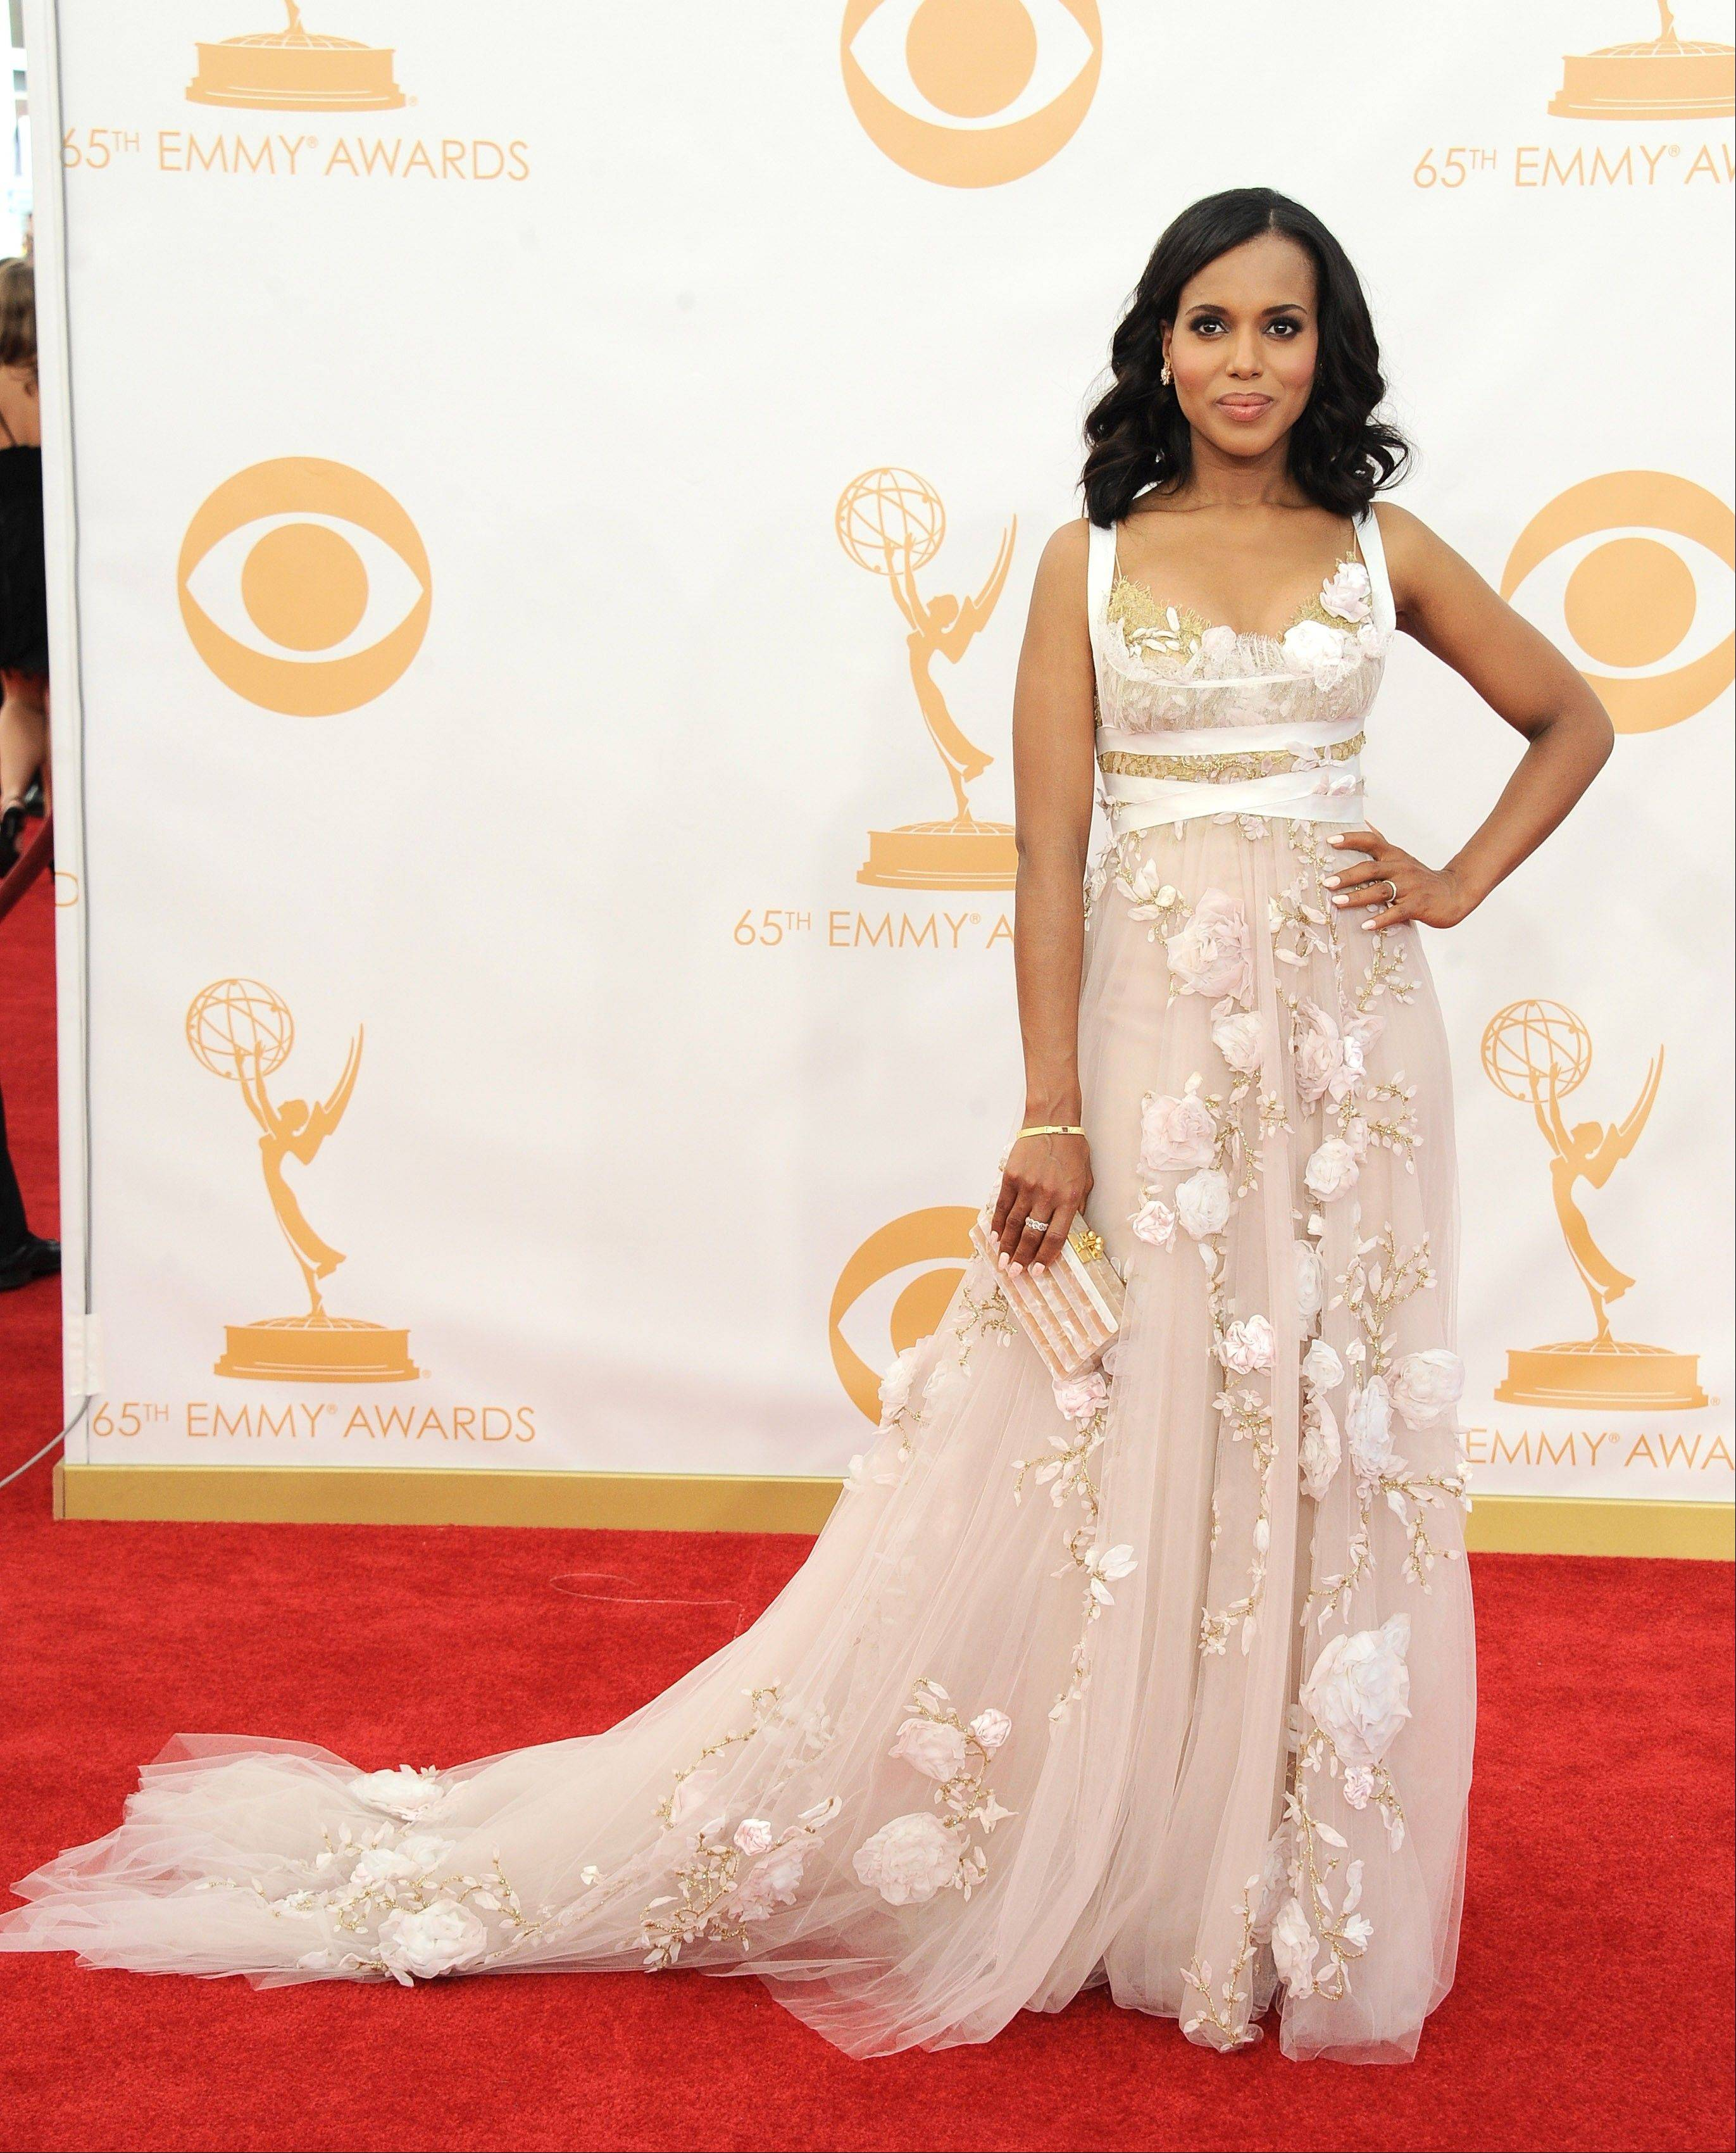 Kerry Washington, wearing Marchesa, arrives at the 65th Primetime Emmy Awards at Nokia Theatre on Sunday in Los Angeles.